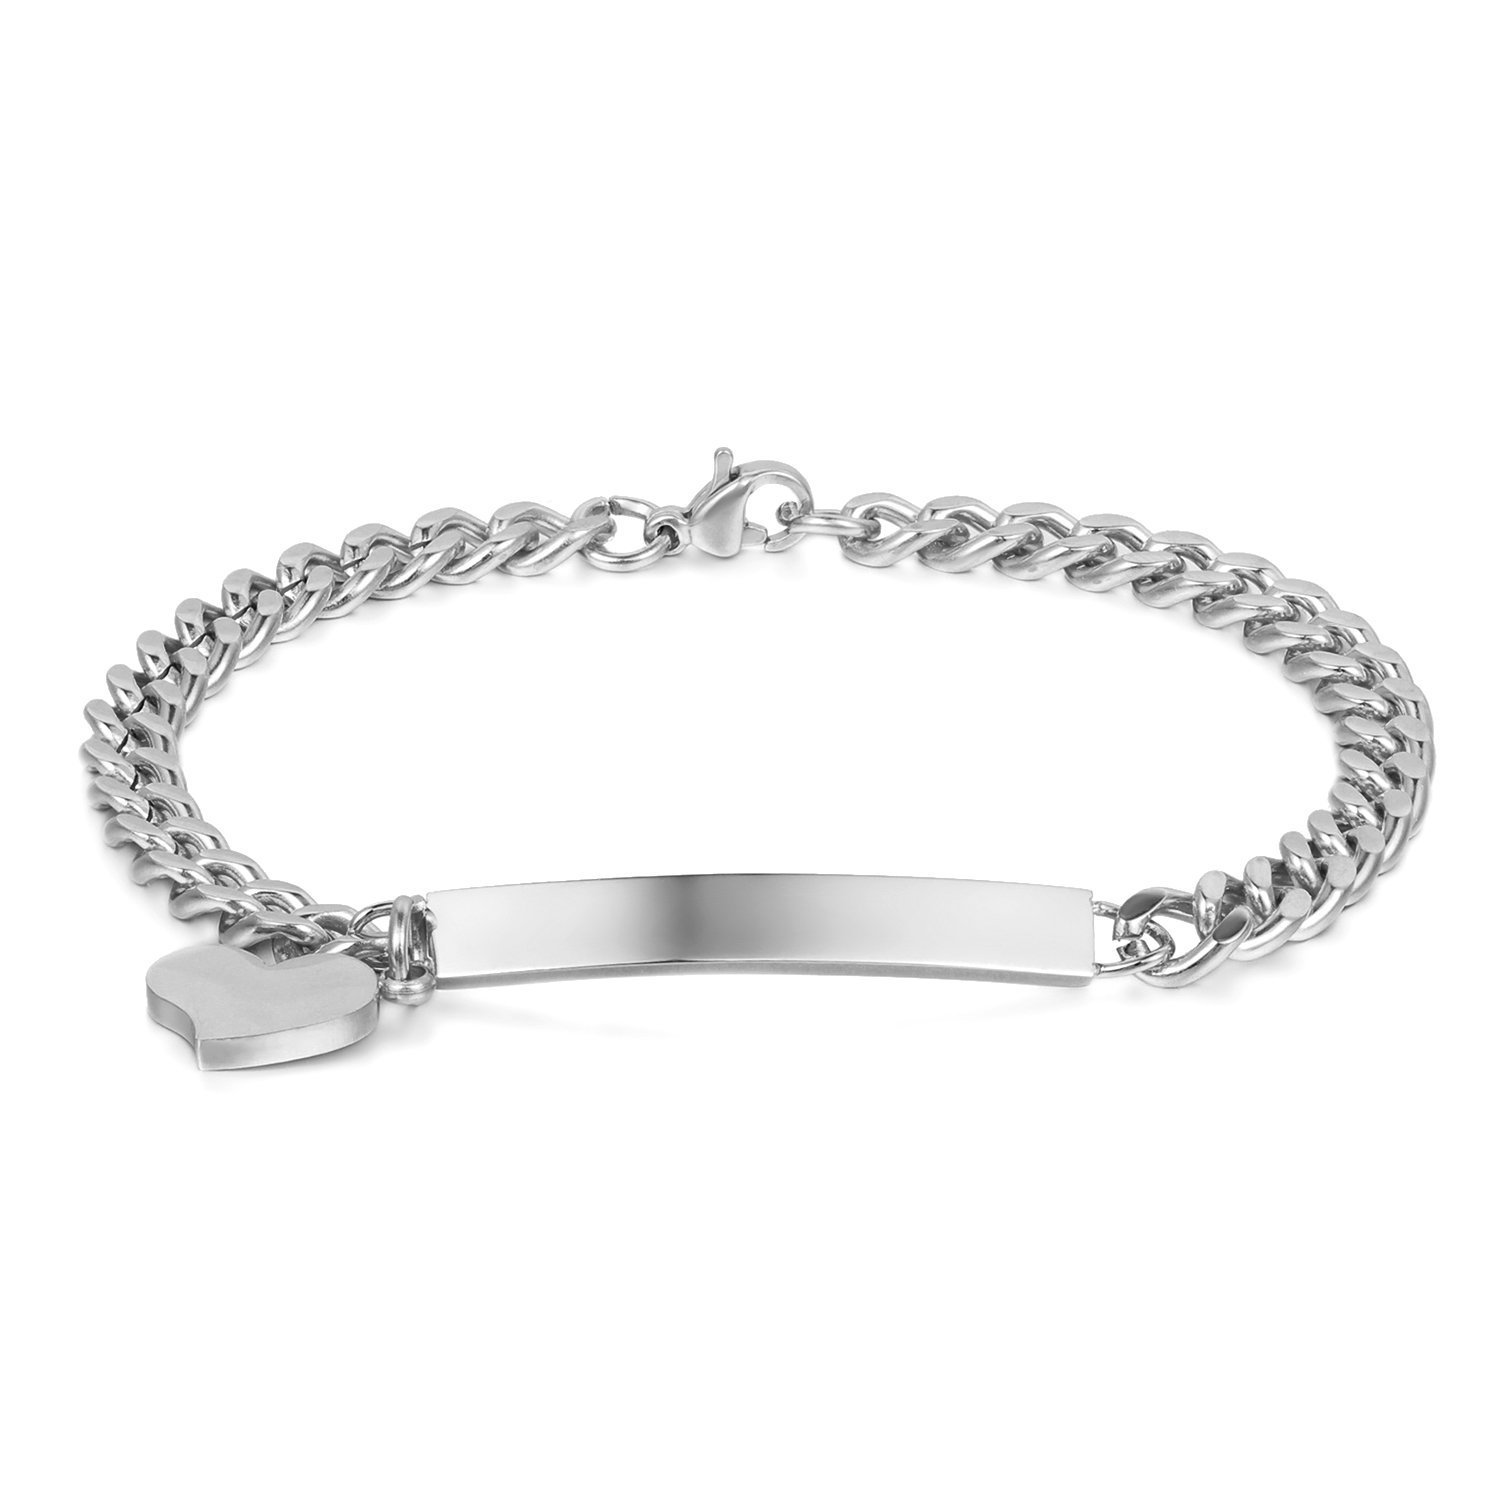 Free Engraving Womens Heart Charm ID Bracelet Stainless Steel Tag Link Wrist, 8 inches Blowin BW1P1002022N